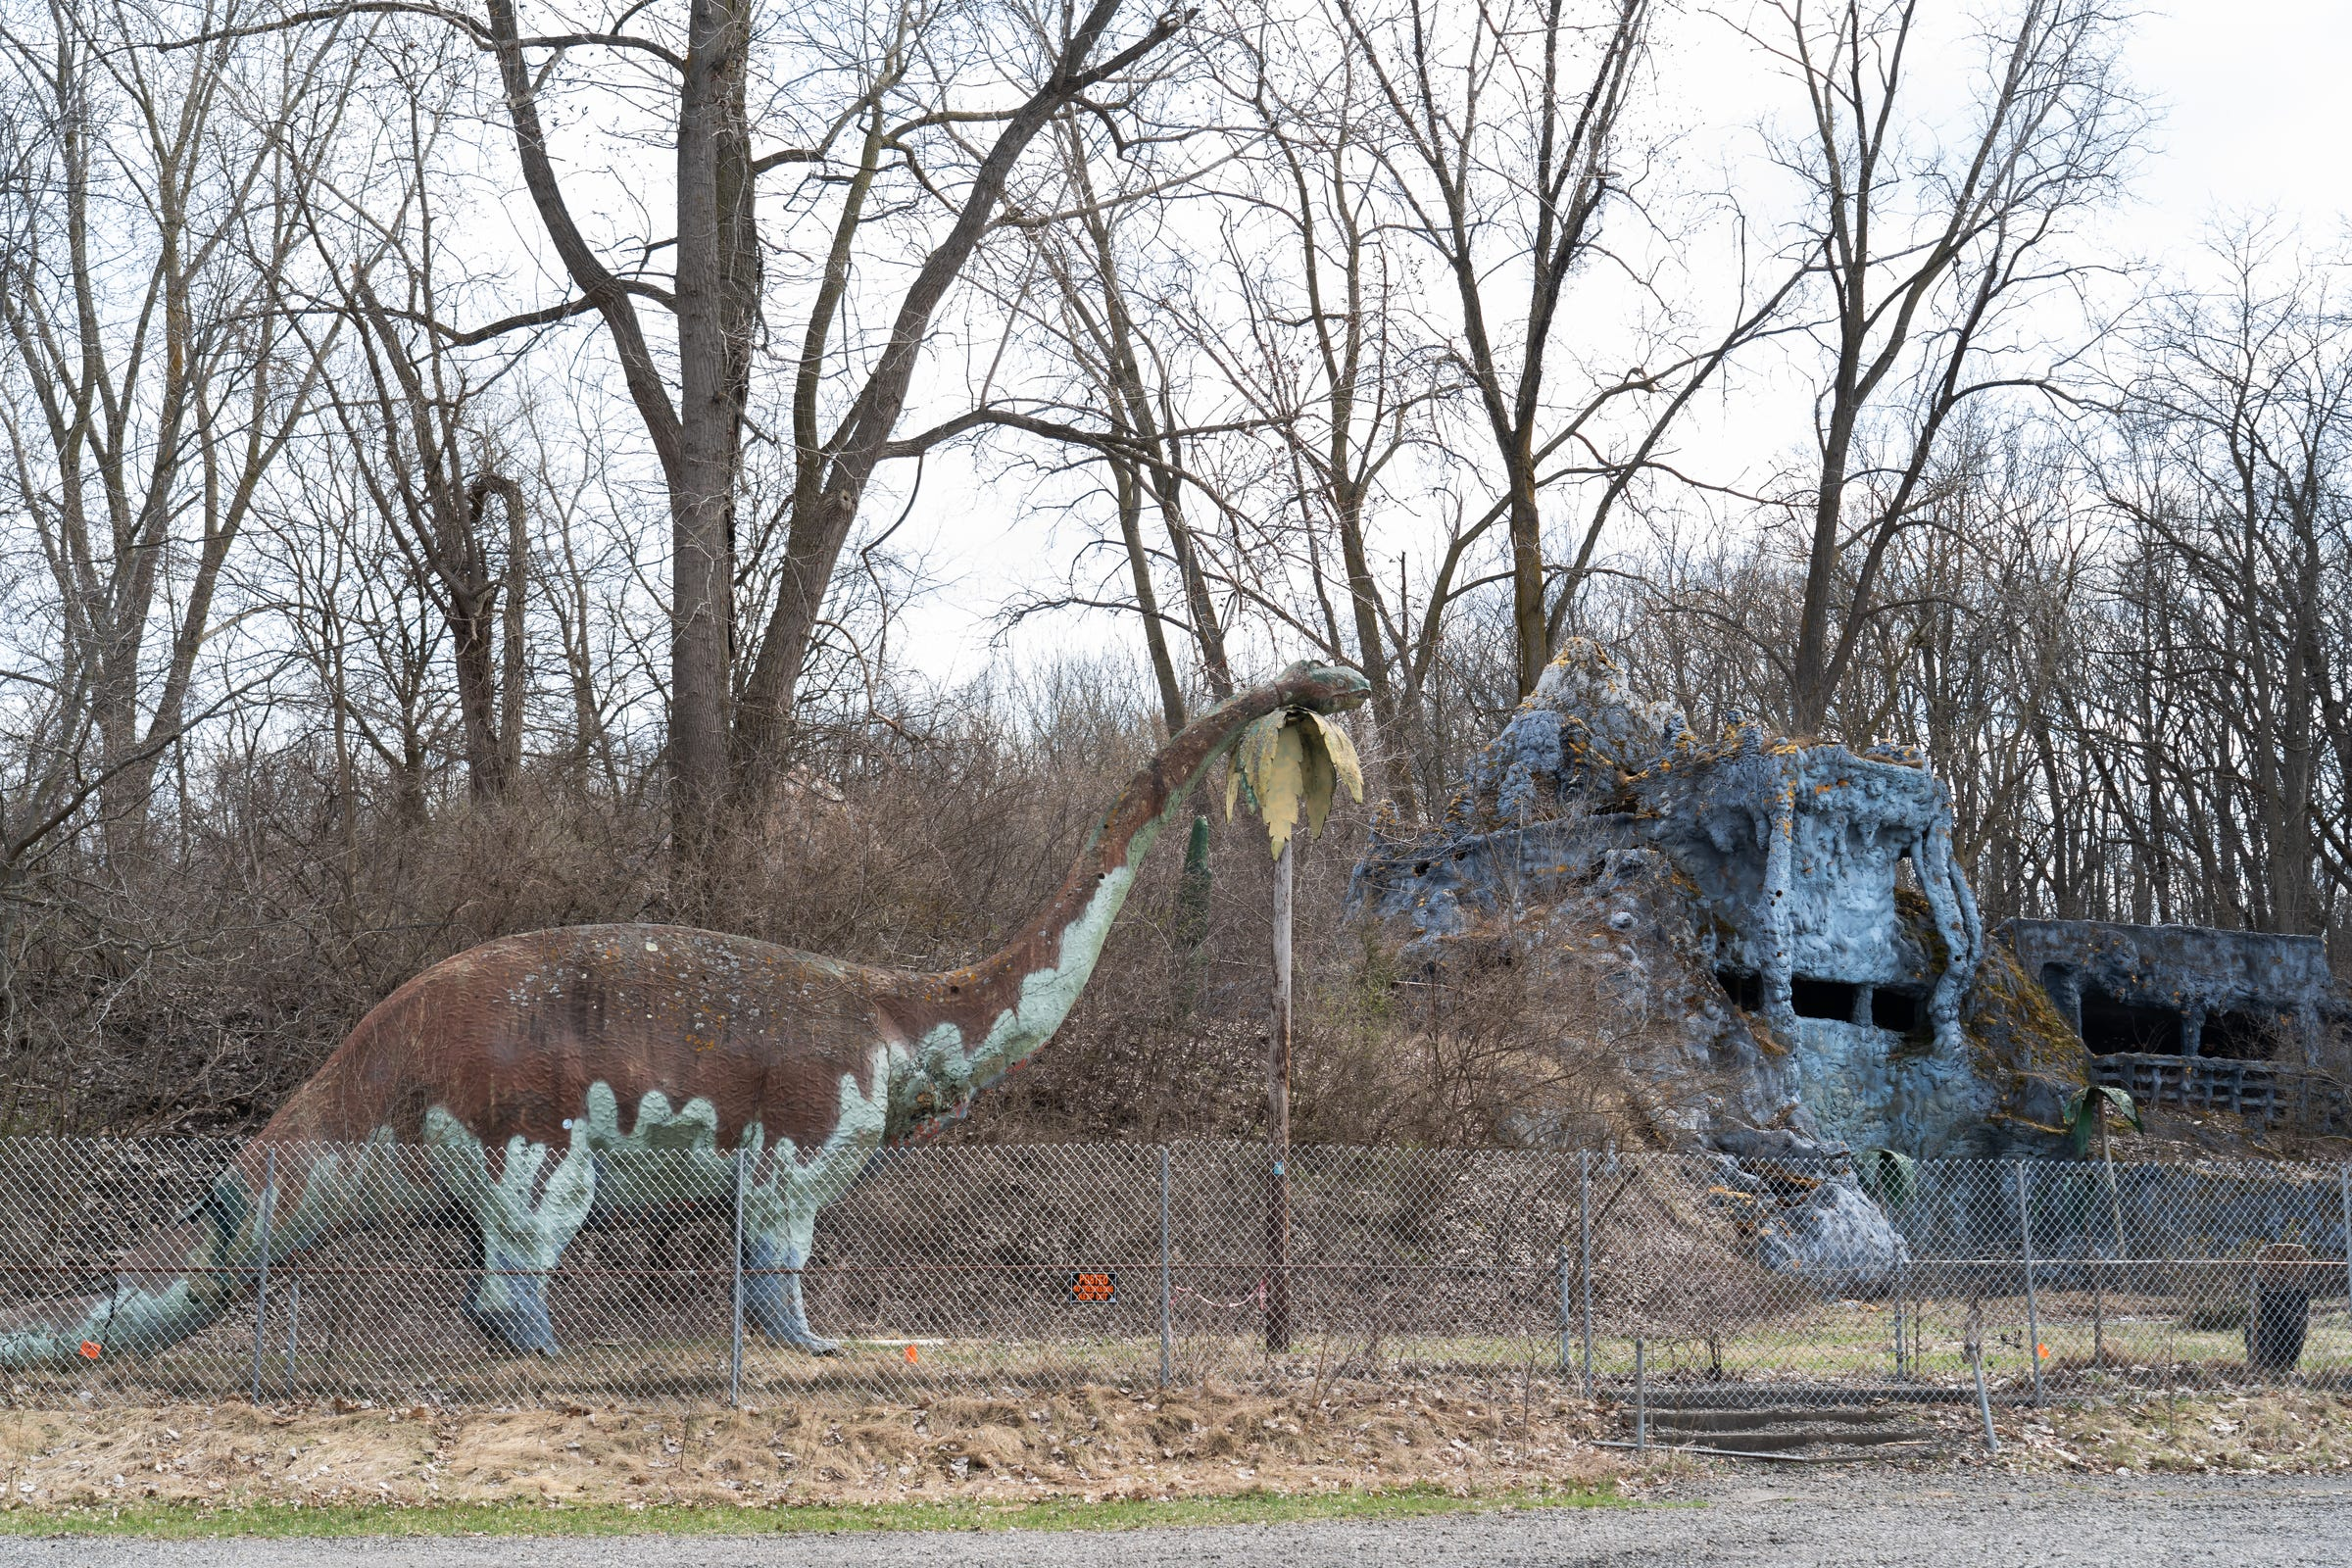 A large Brontosaurus stands at the entrance of Prehistoric Forest, a former roadside attraction in Irish Hills, on Tuesday, April 16, 2019.